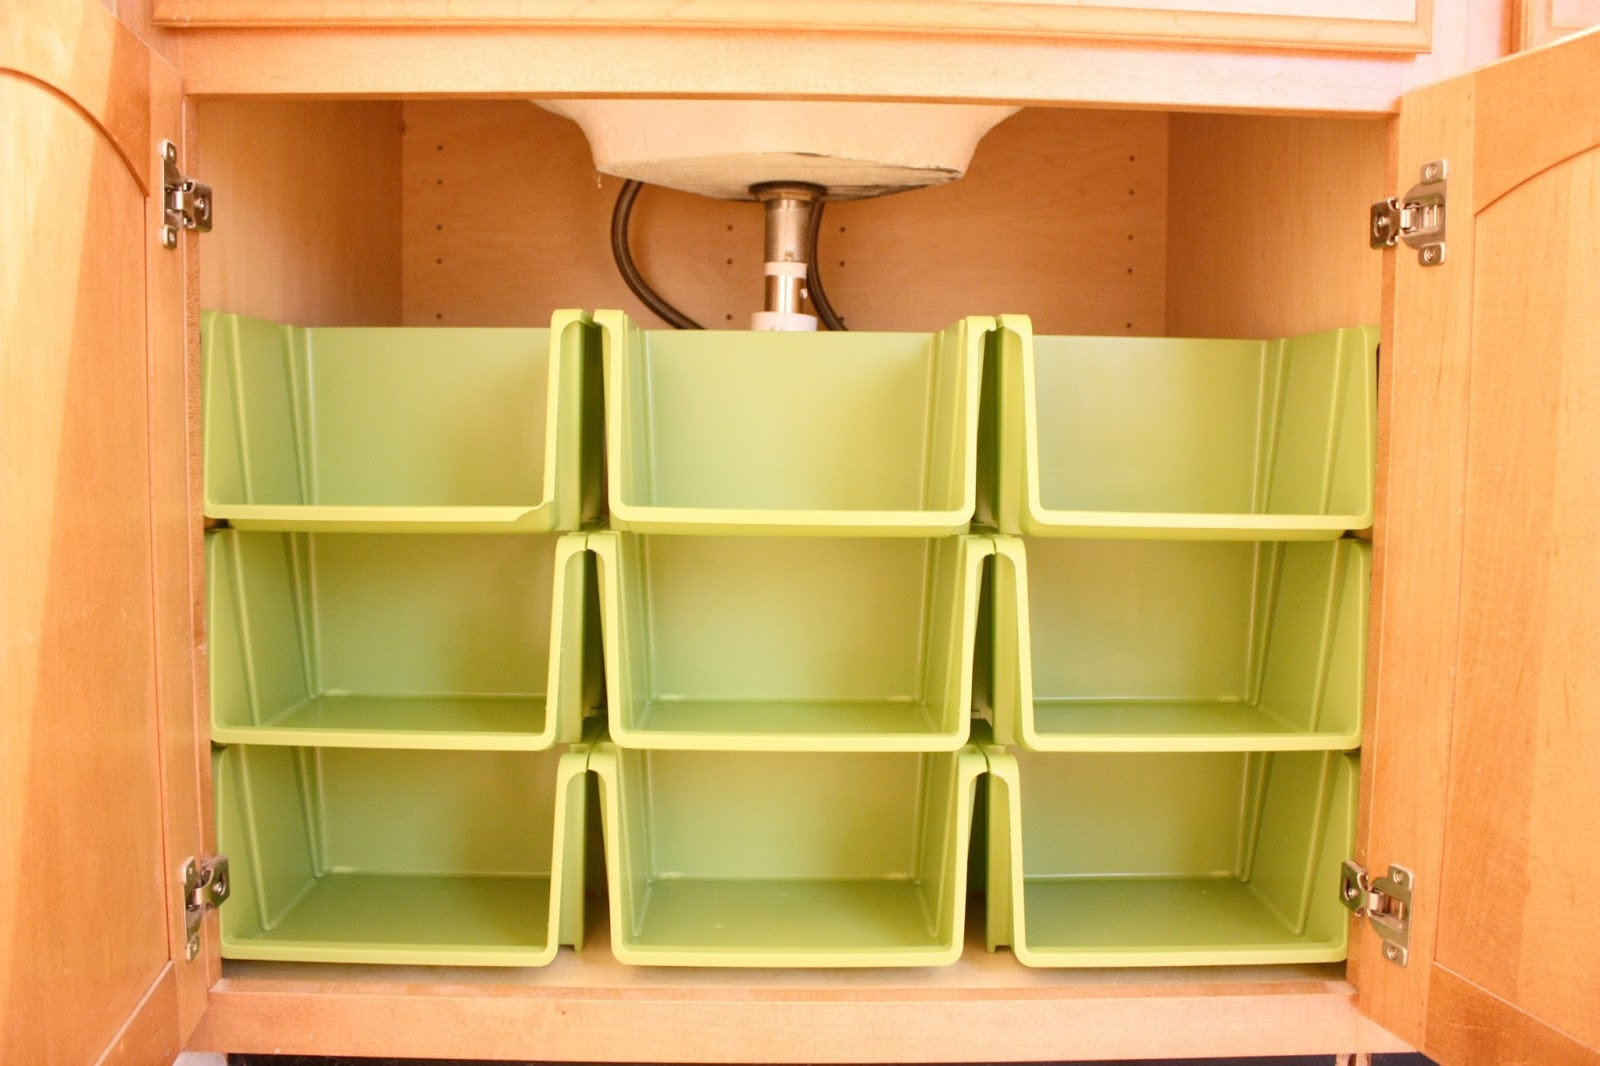 Best ideas about DIY Cabinet Organization . Save or Pin The Orderly Home Bathroom Cabinet Organization Now.